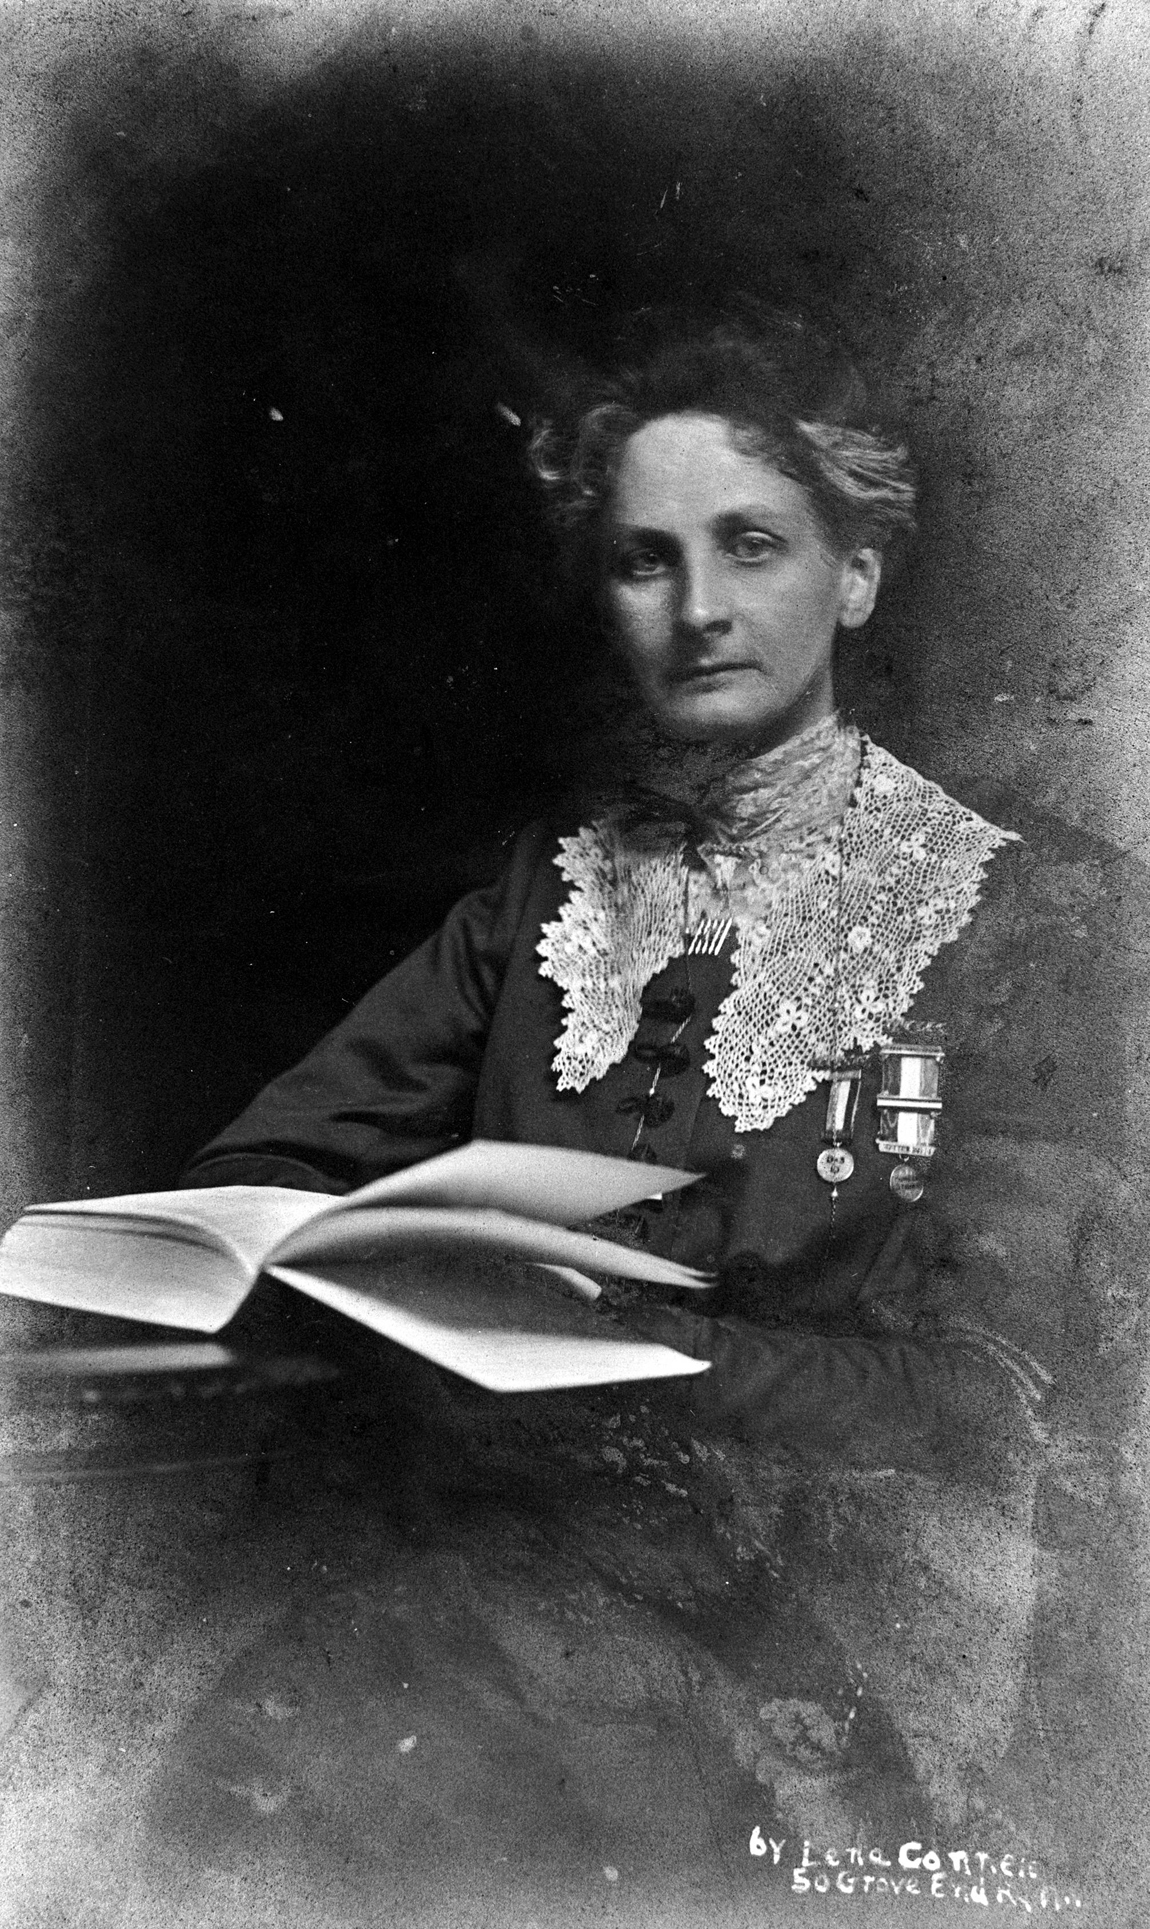 Suffragette, Lady Constance Lytton wearing a prison number badge and hunger strike medal, c1912. Lytton became involved with the women's suffrage movement in her late thirties, and was first arrested for joining a protest demonstration in February 1909. Having been sentenced to four weeks in Holloway, she was confined to the prison hospital with an alleged heart condition, but soon suspected that she was being given preferential treatment because of her social rank. Her treatment in Newcastle prison following a second arrest in October of the same year confirmed her suspicions: after a 56-hour hunger strike she was not forcibly fed, like other suffragettes, but examined by a heart specialist and allowed to go free. The following year, at a protest demonstration in Liverpool, Lytton disguised herself as a working-class woman and gave the false name of Jane Warton when she was arrested. This time she suffered the same treatment as the other suffragettes in prison. In 1912 she suffered a stroke and remained an invalid for the rest of her life. Suffragette, Lady Constance Lytton wearing a prison number Credit: Museum of London / HIP / TopFoto